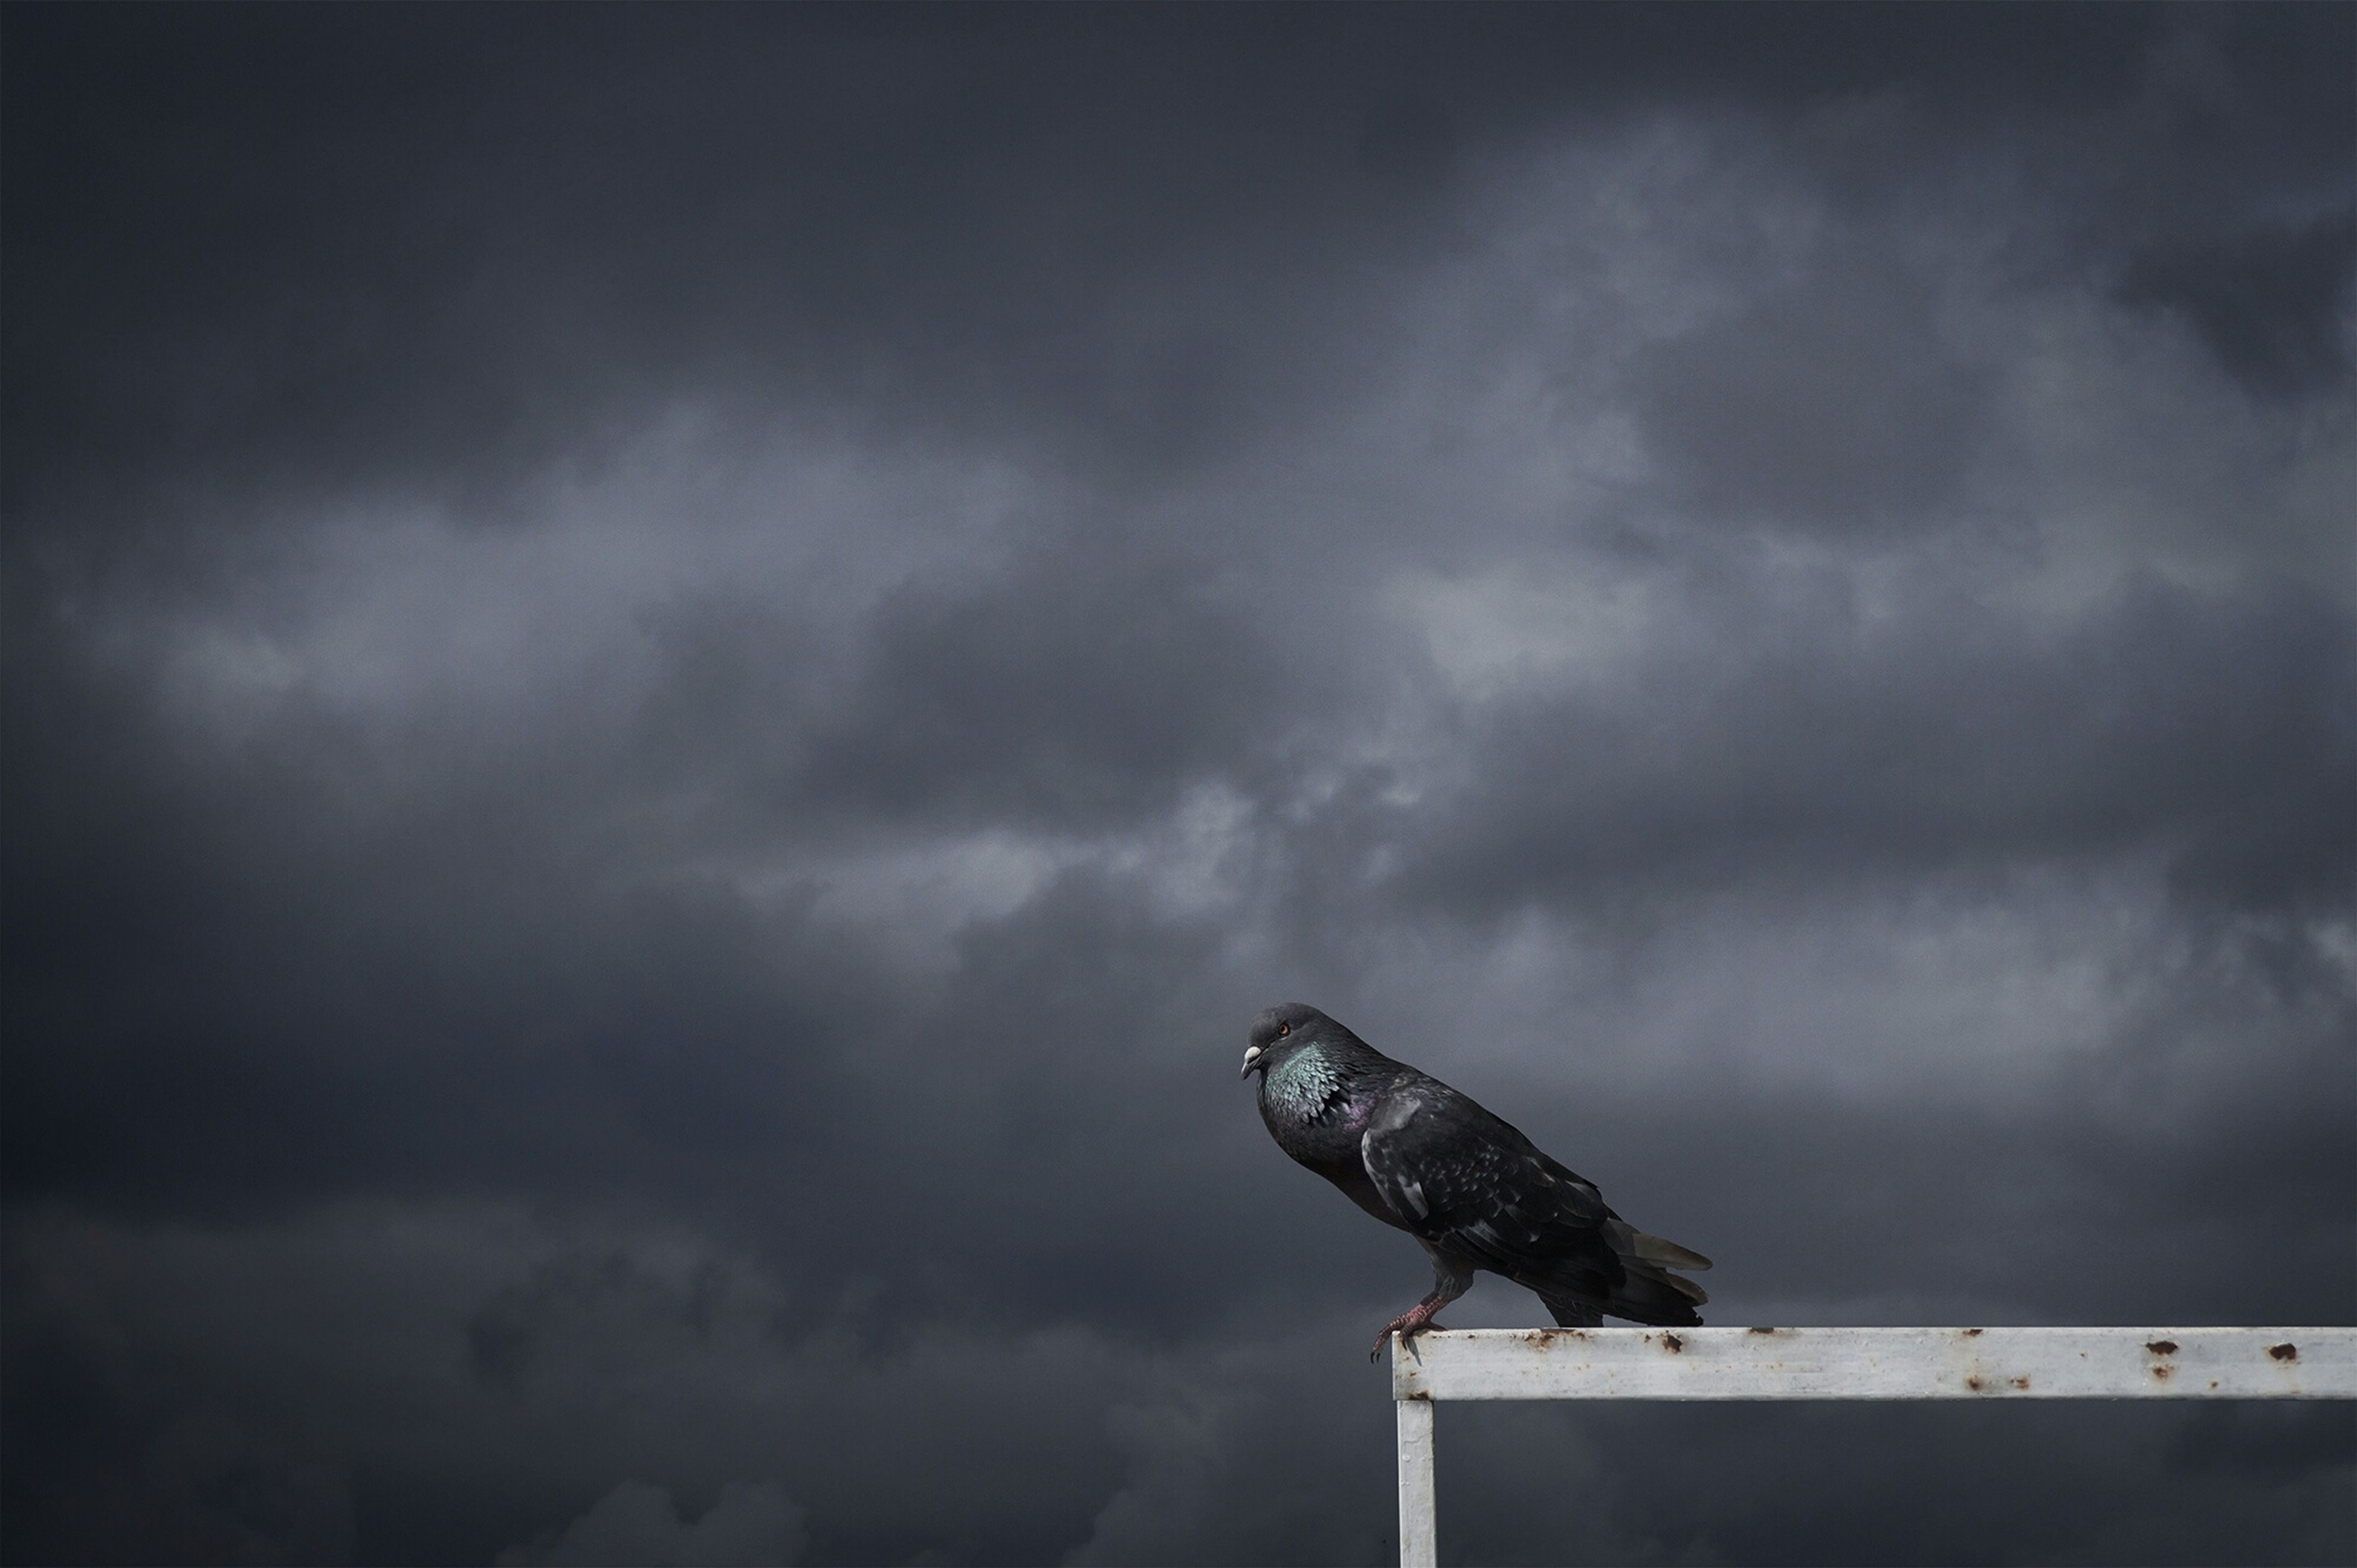 sky, cloud - sky, cloudy, weather, overcast, low angle view, animal themes, animals in the wild, bird, one animal, nature, outdoors, cloud, perching, dusk, day, storm cloud, no people, wildlife, built structure